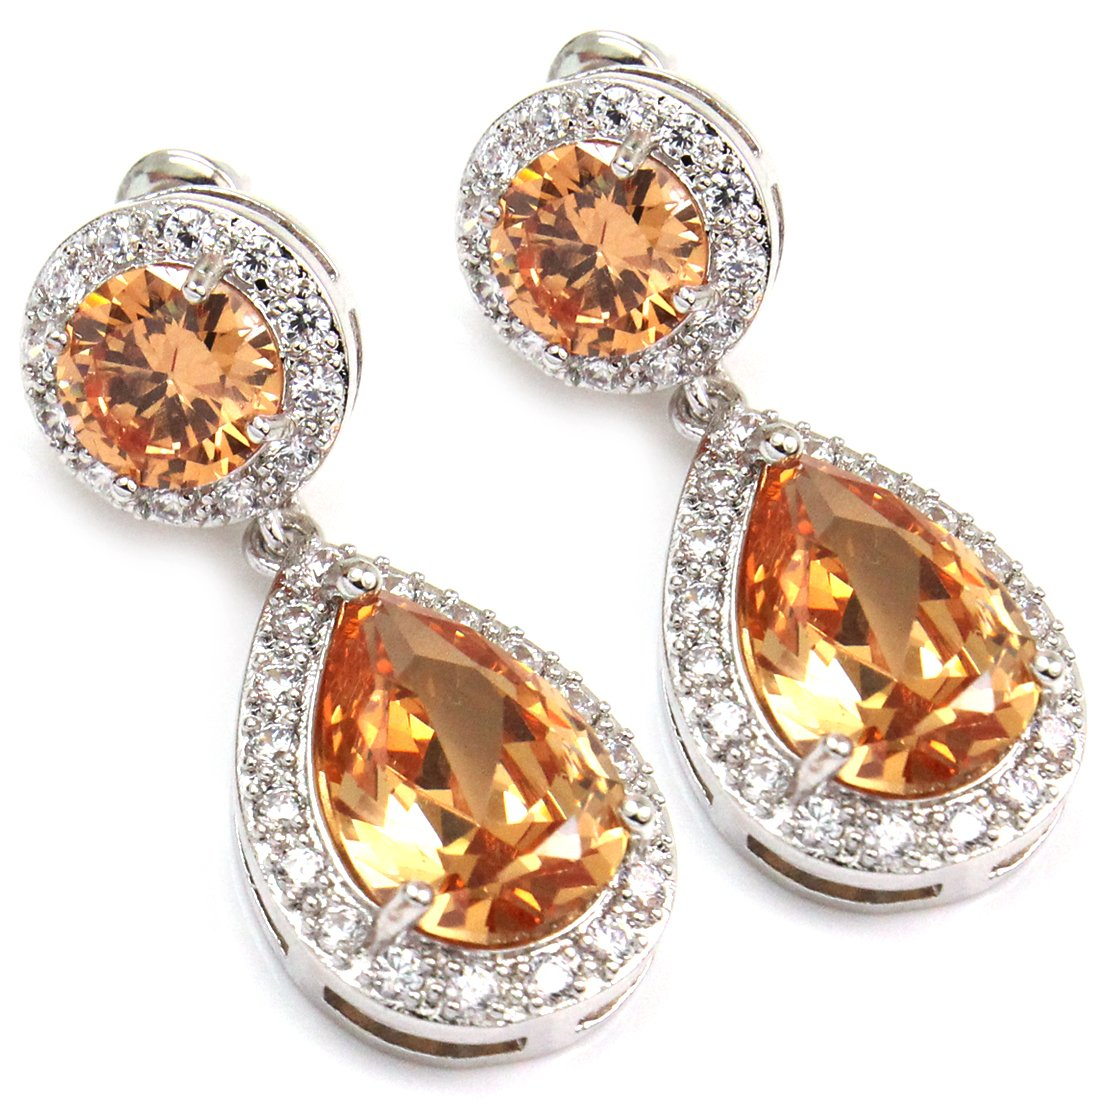 FC JORY Silver White Gold Plated Colorful CZ Crystal Teardrop Dangle Bridal Jewelry Fashion Earrings